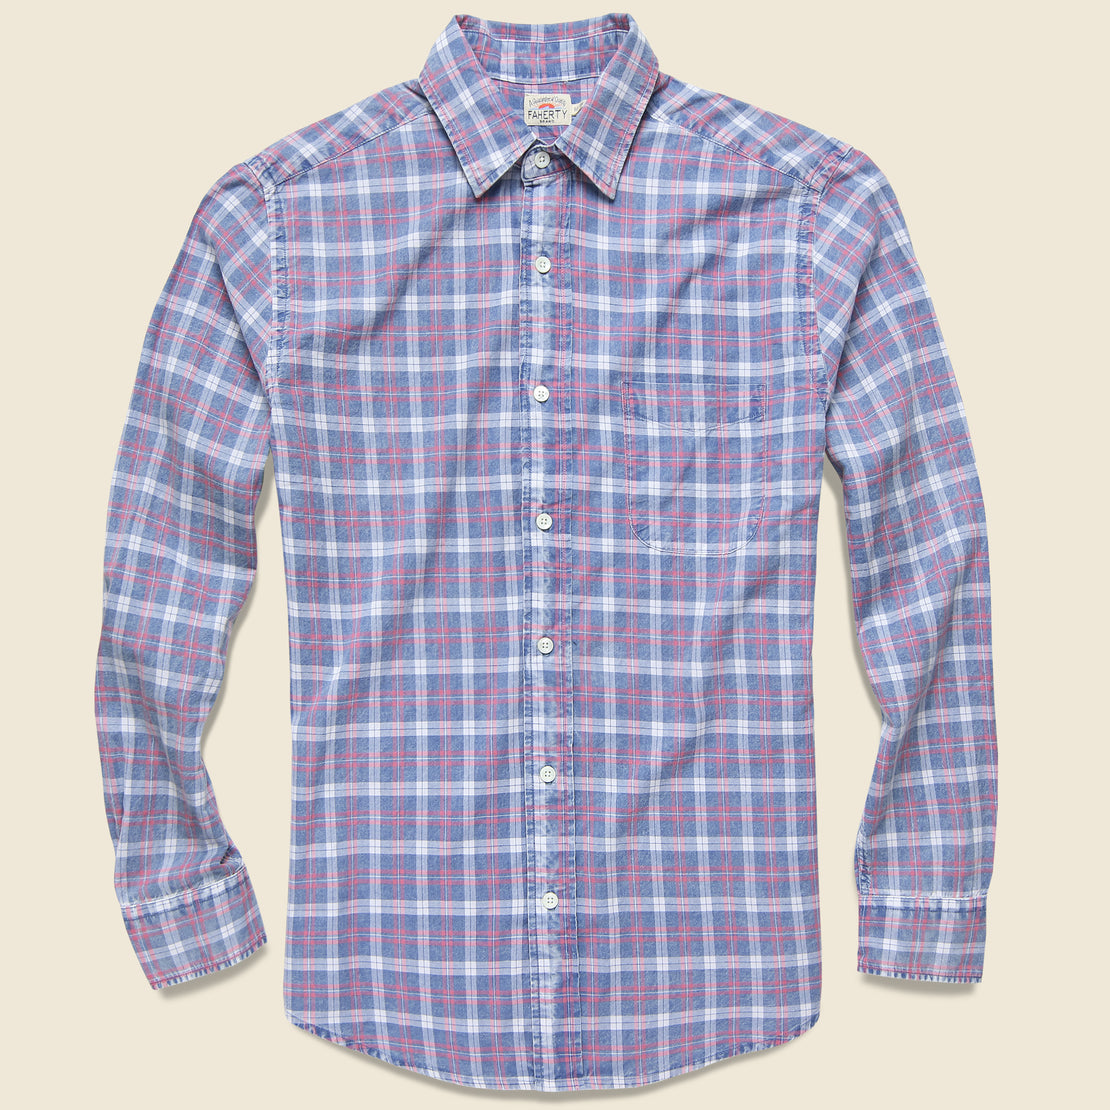 Faherty Ventura Shirt - Indigo White Plaid